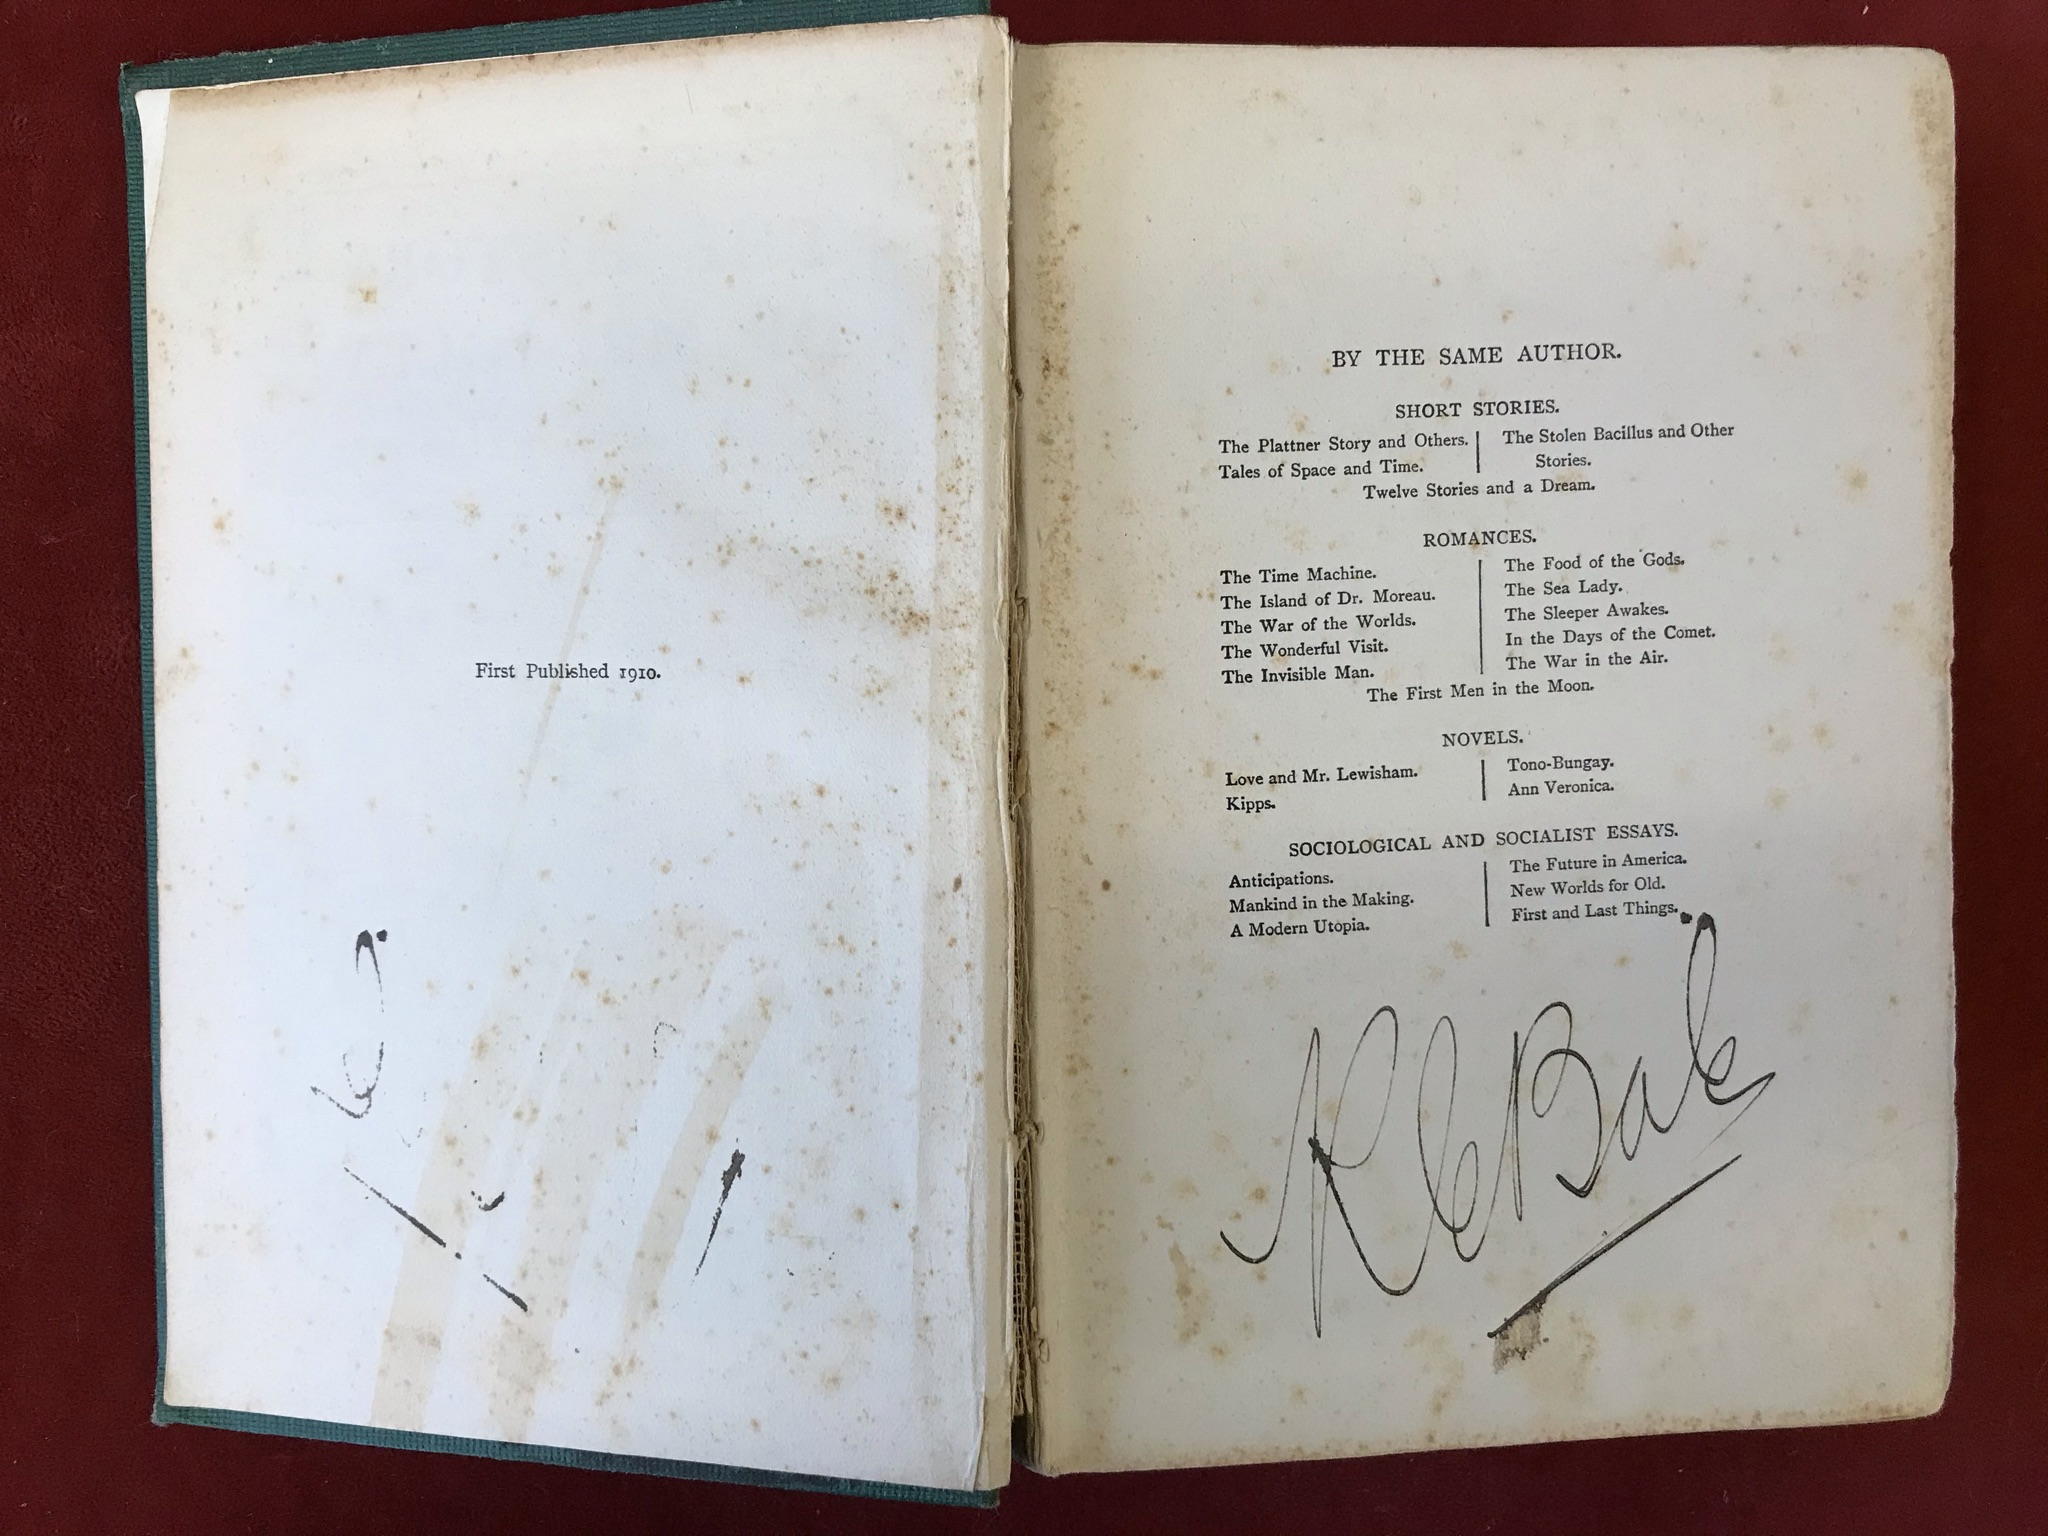 The History of Mr. PollyFirst edition, no D/W, flaked spine, 1910 - Image 3 of 3